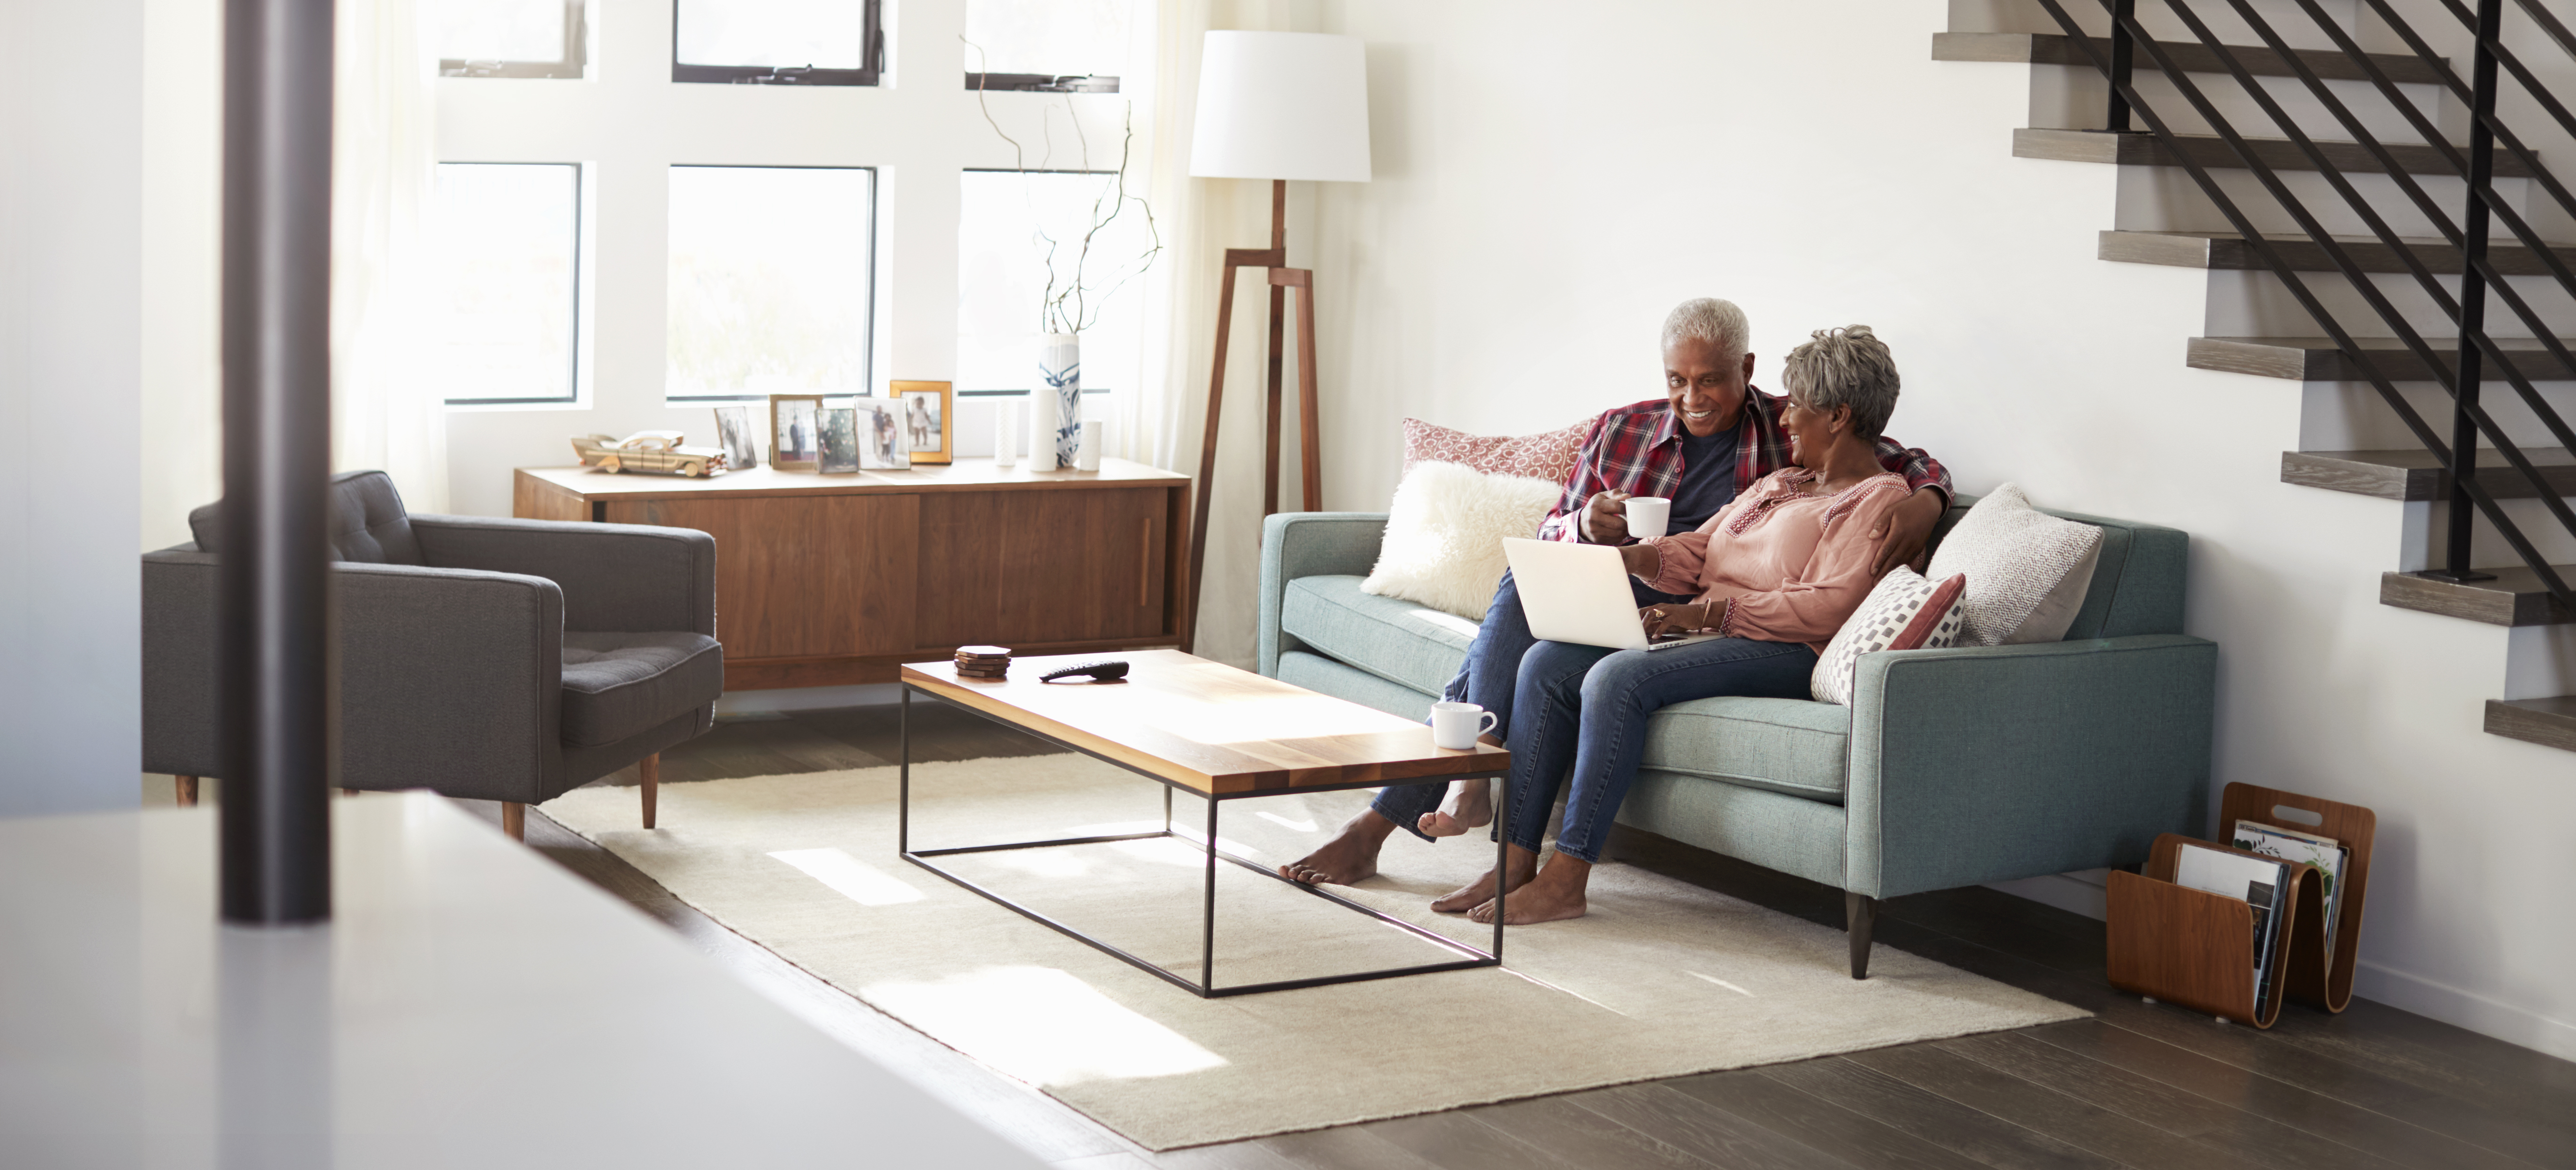 Man and woman sitting on couch in their house